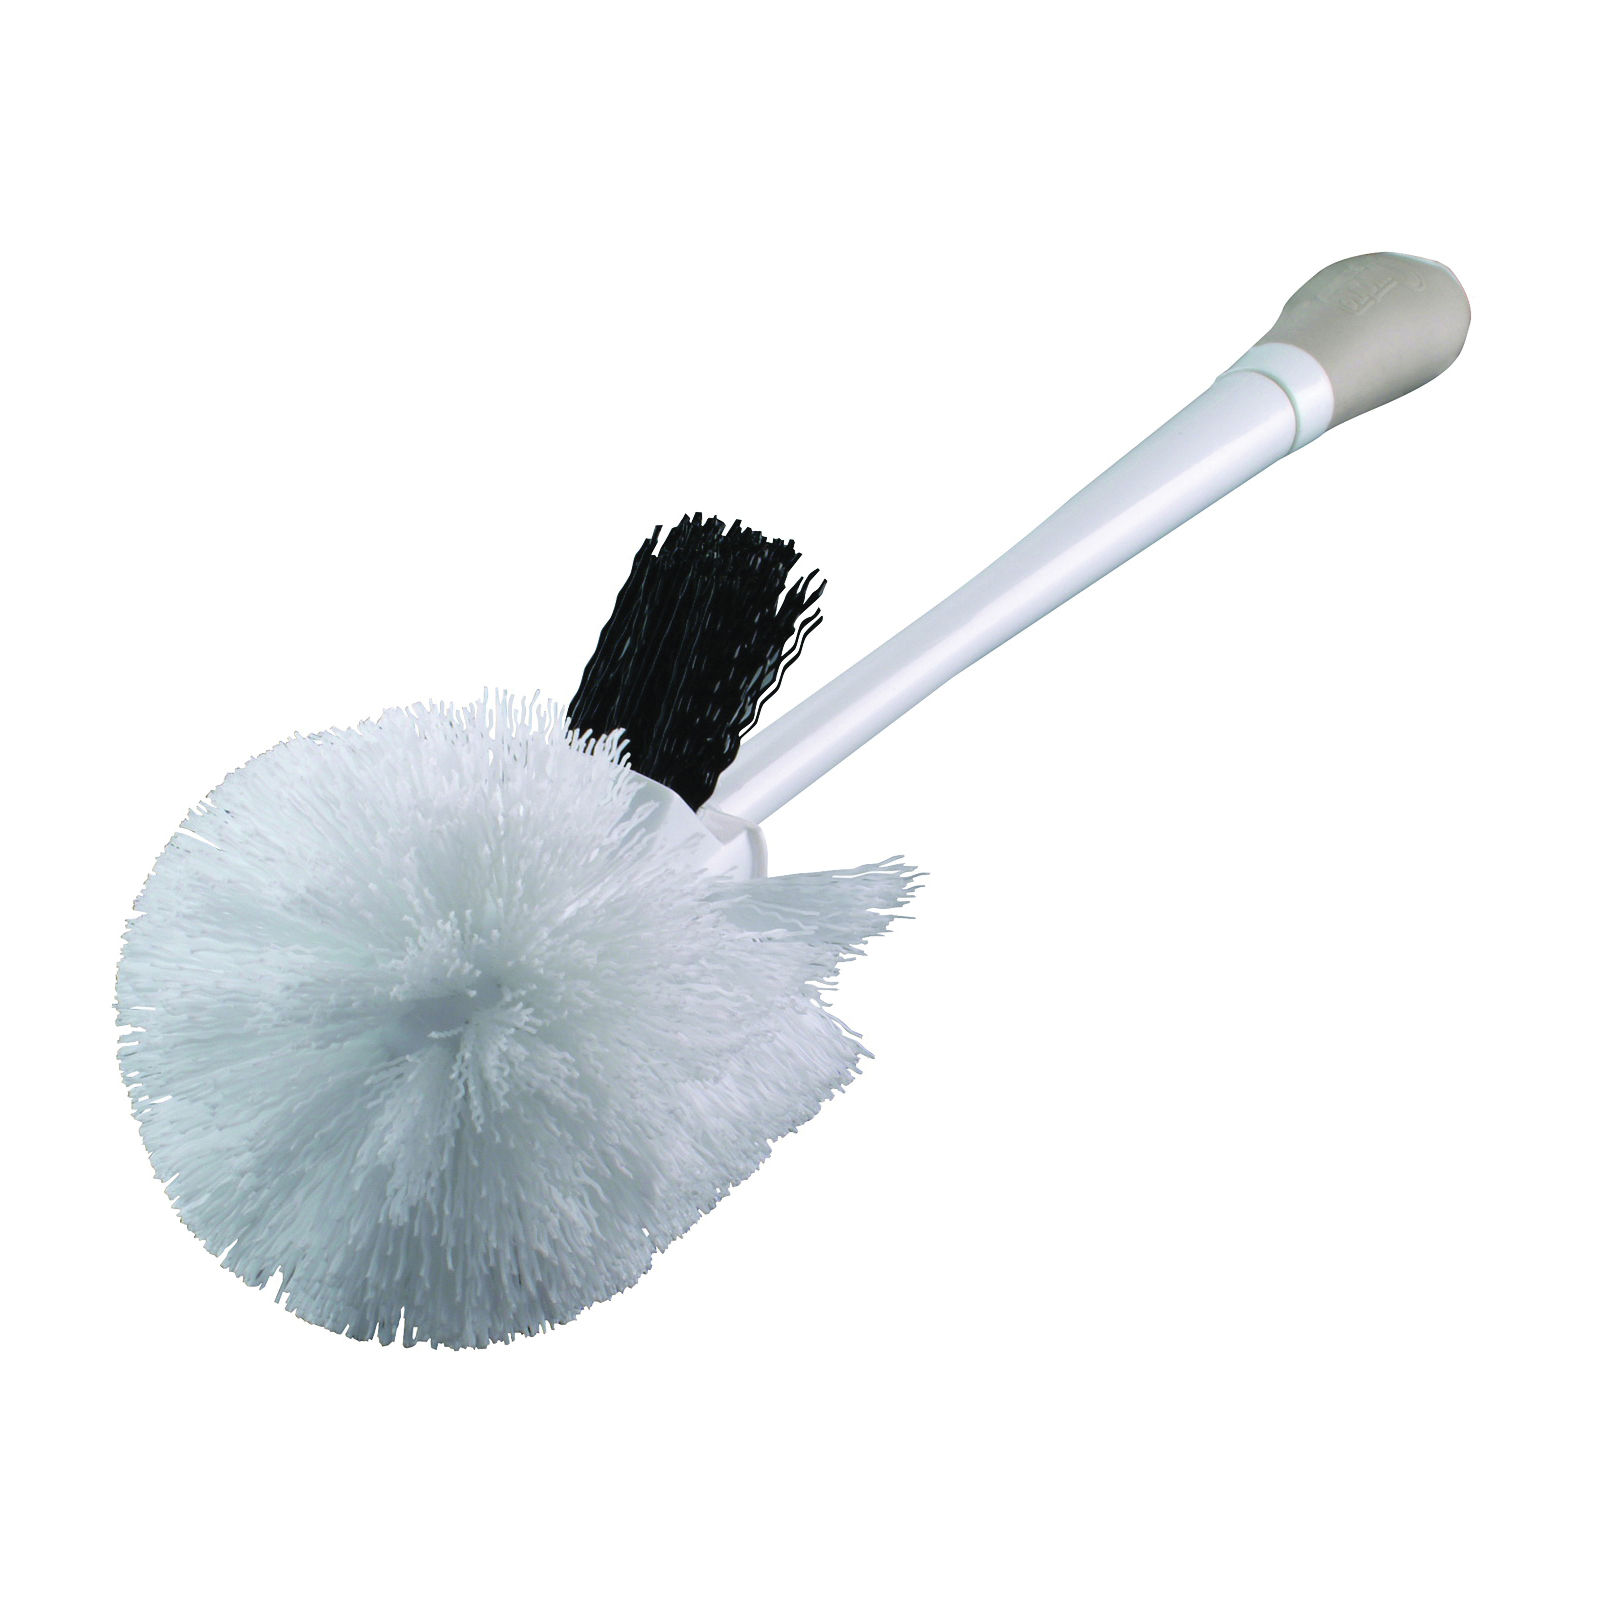 Picture of Quickie HomePro 314MB Toilet Bowl Brush, Polypropylene Bristle, White Bristle